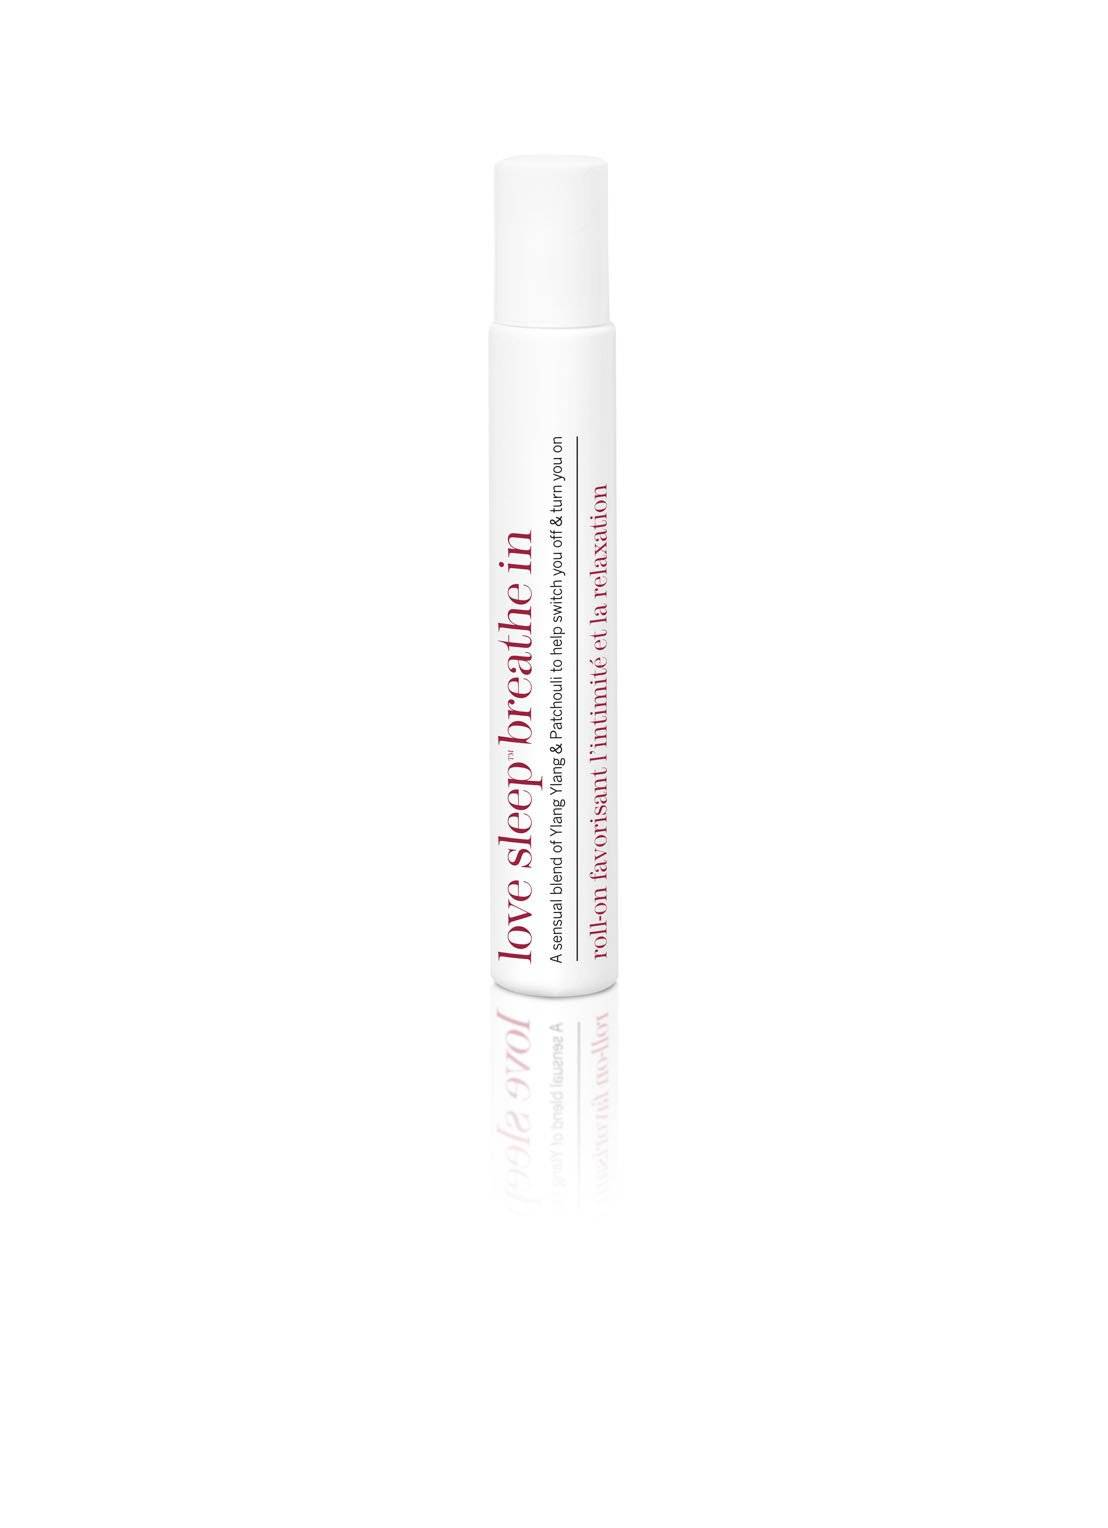 This Works Love Sleep Breathe In - huile corporelle intime roll-on -